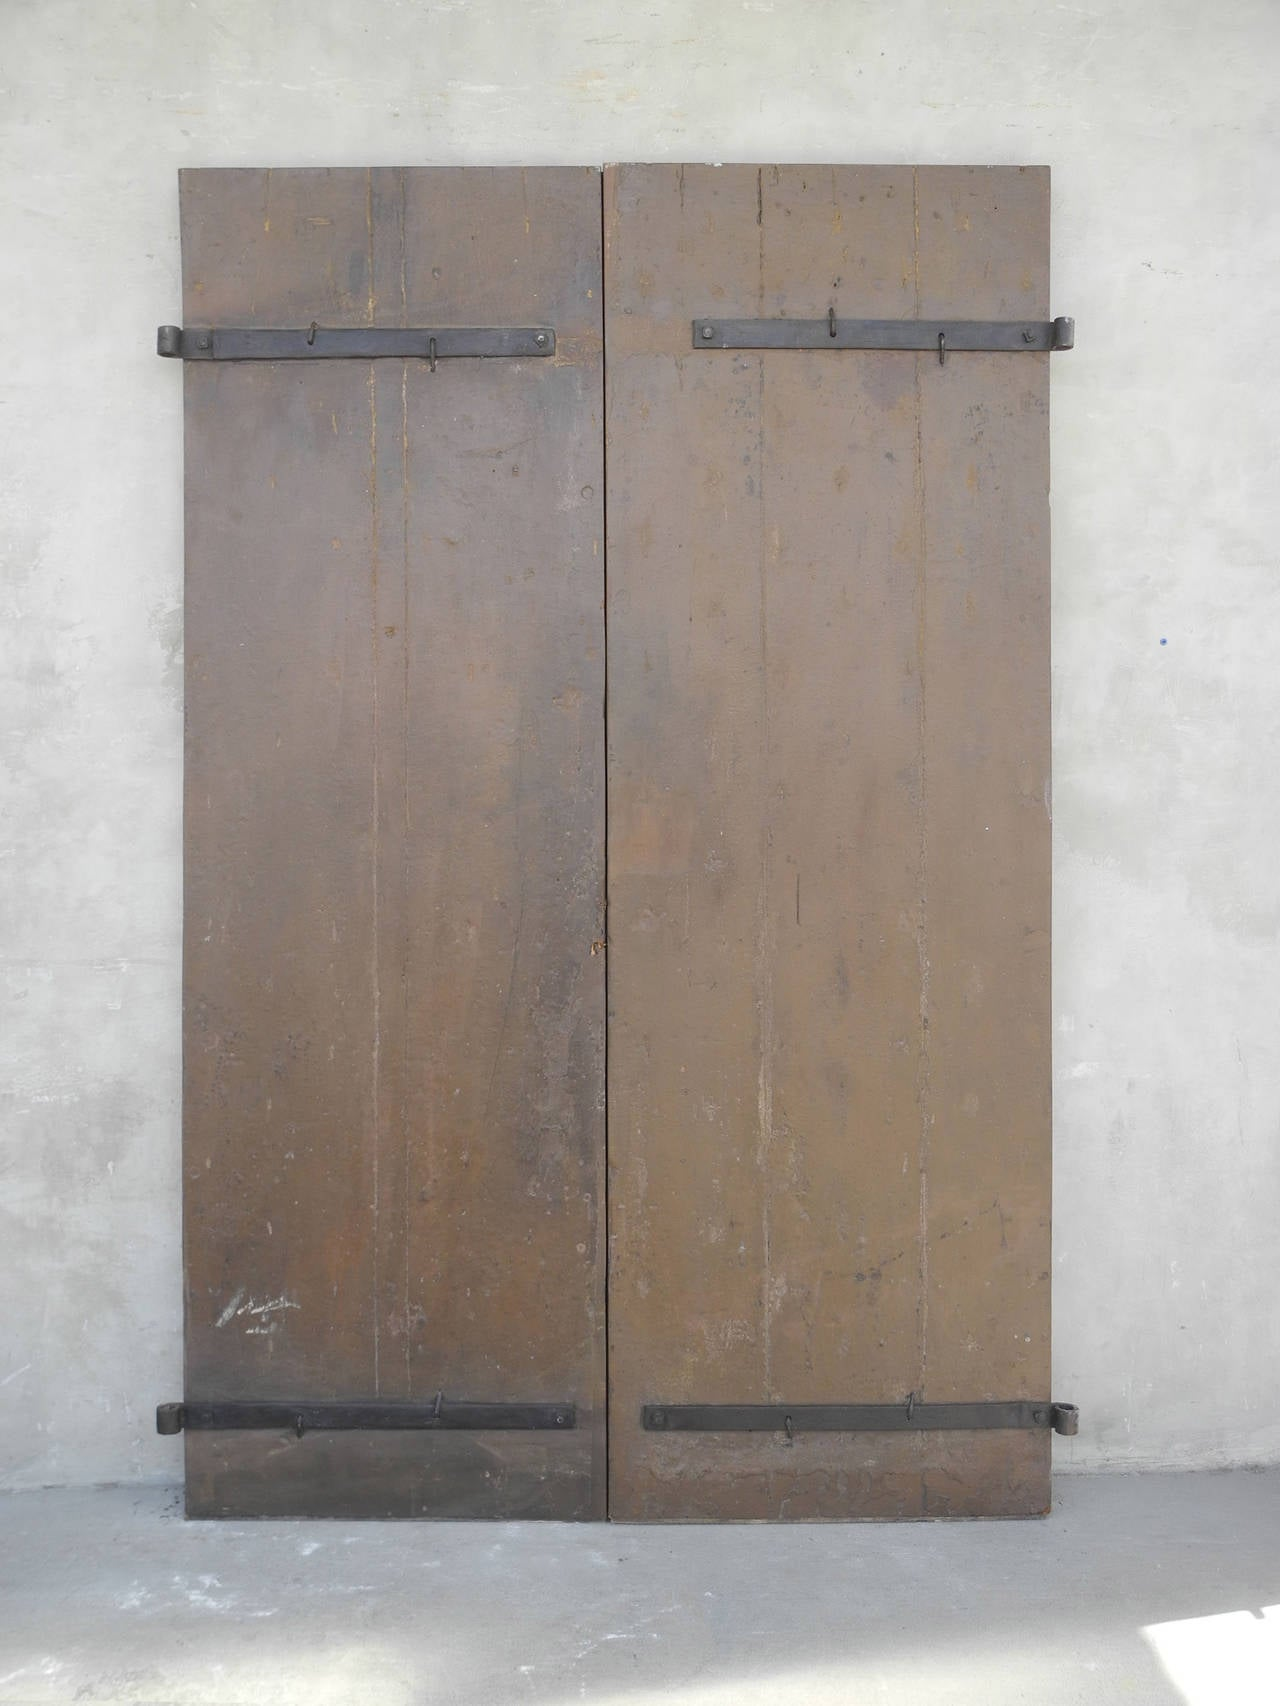 Pair of Antique 17th Century Doors with Nailhead Detailing 3